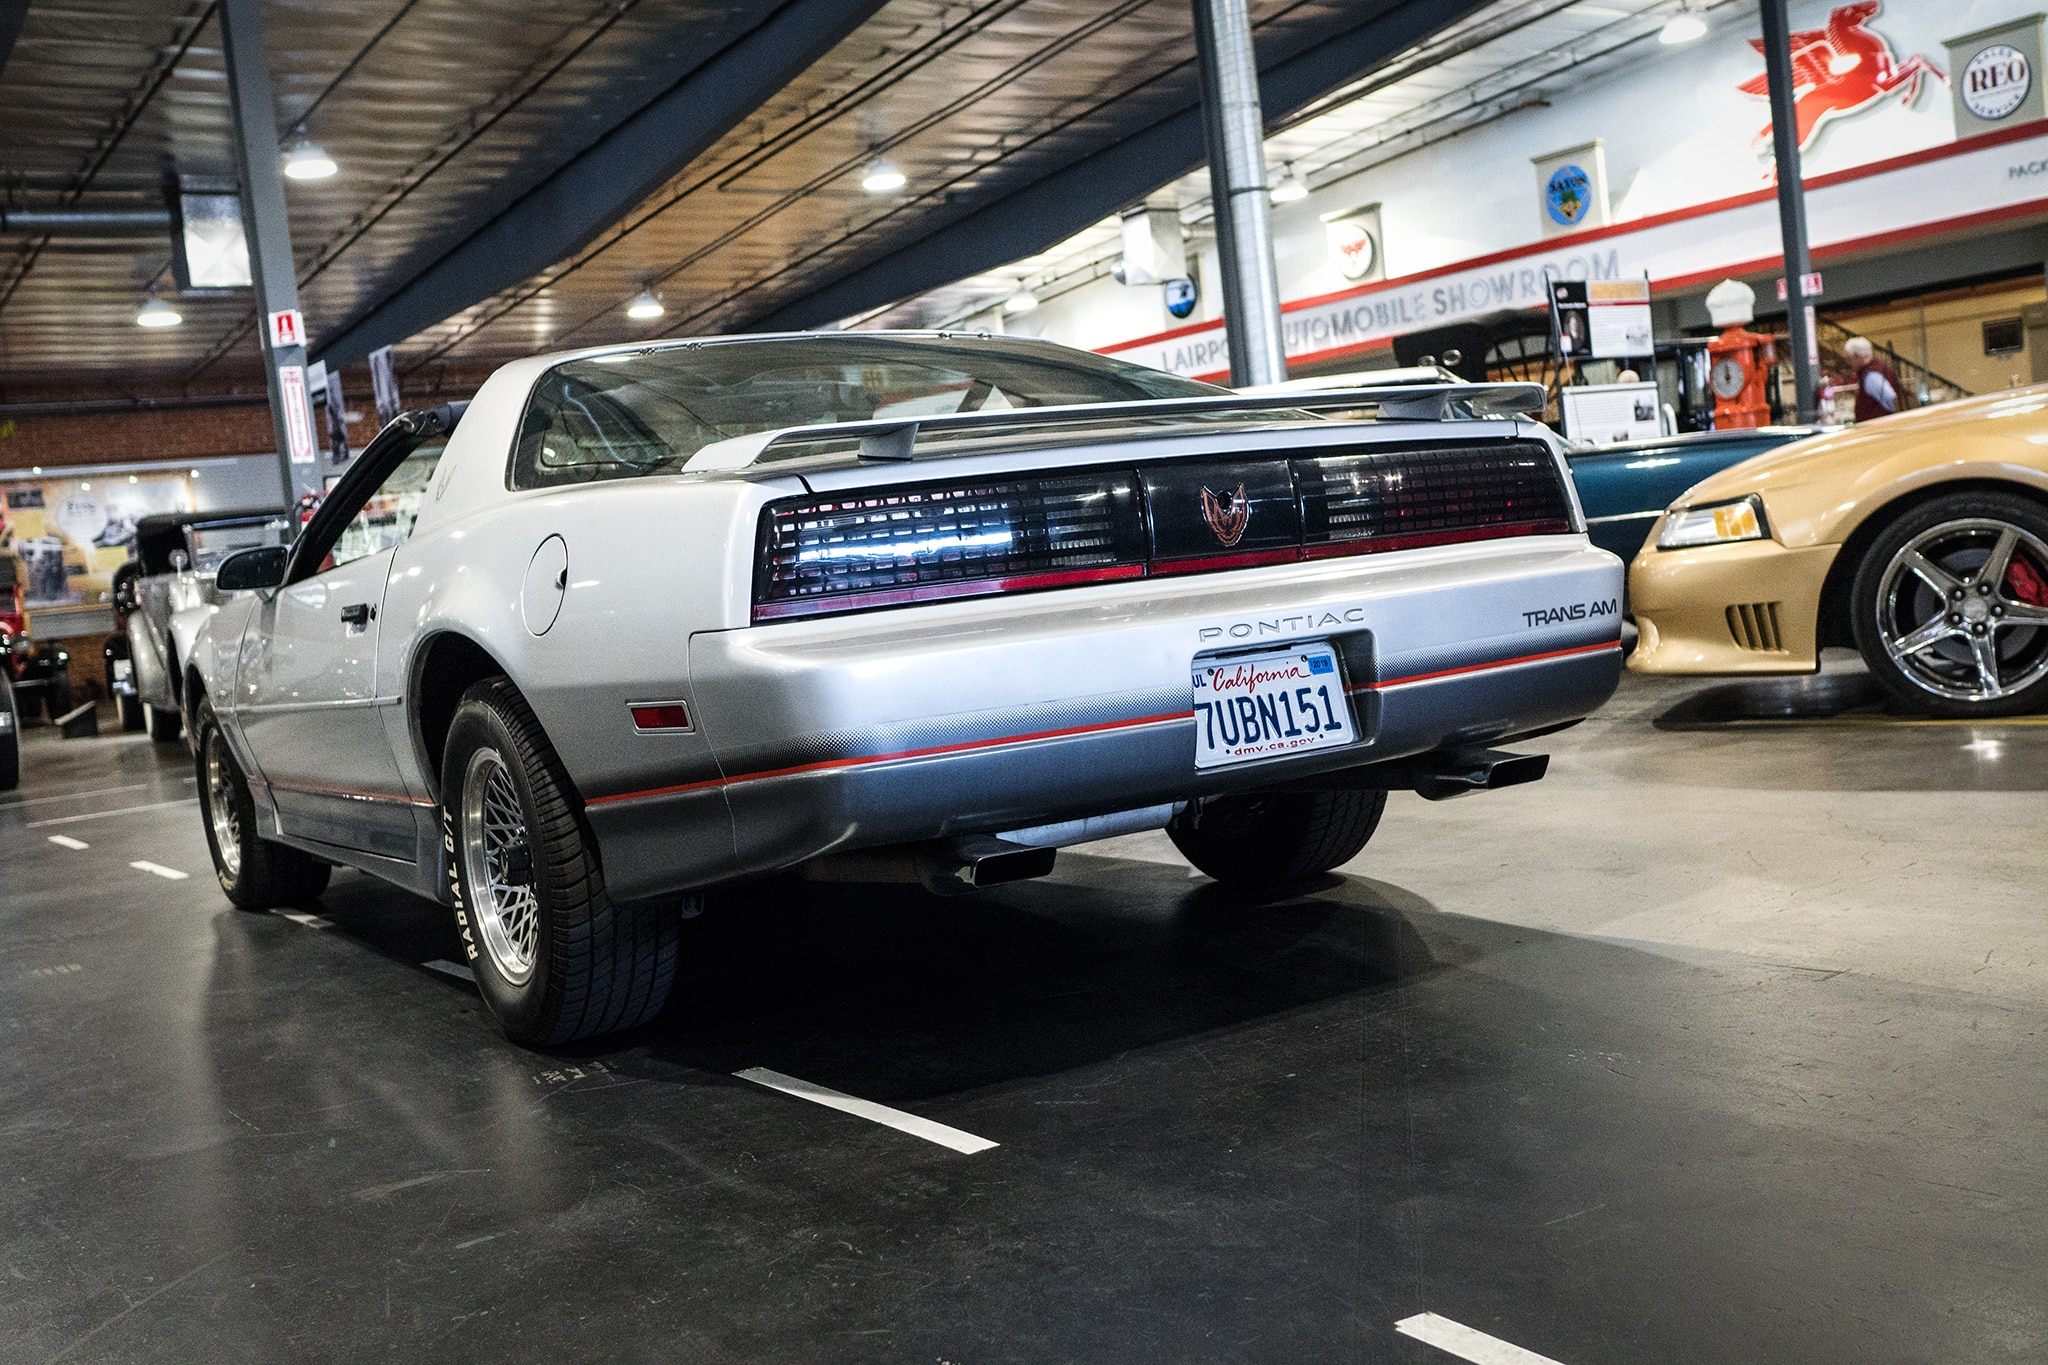 In Photos: All-Women's Car Show at the Automobile Driving